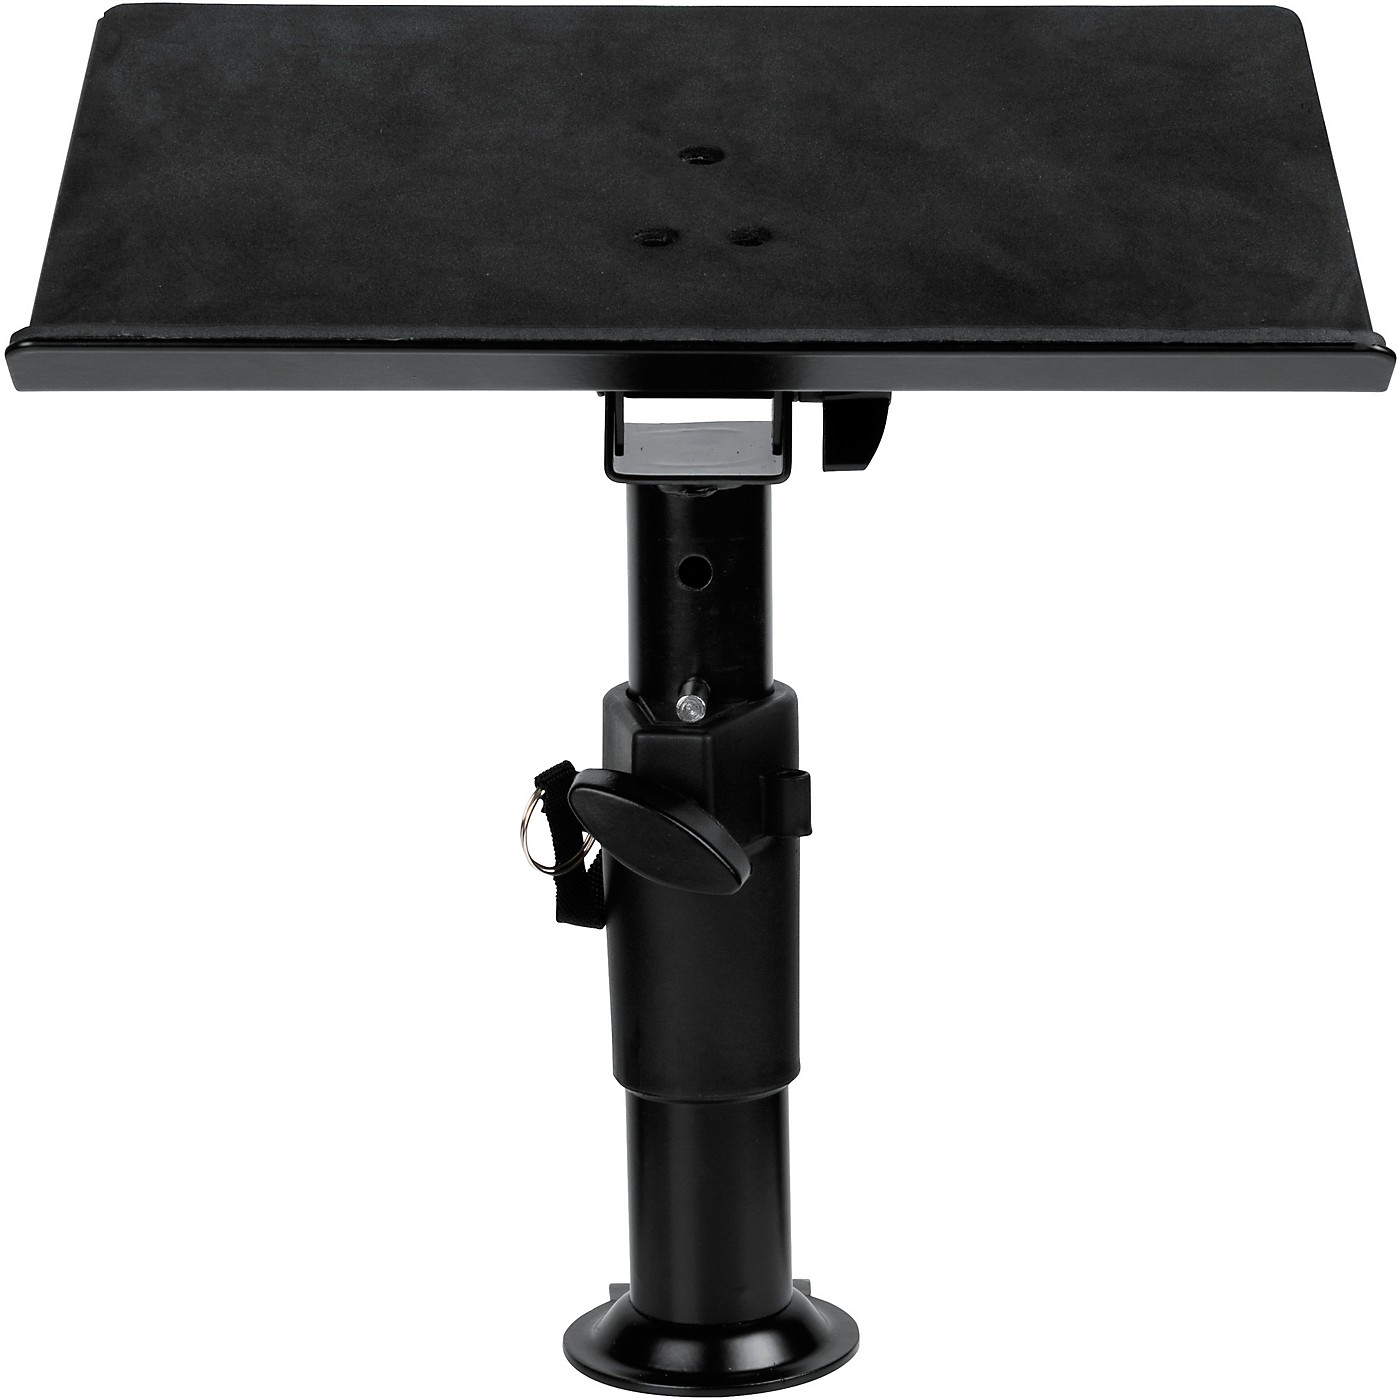 Gator Clampable Universal Laptop Desktop Stand with Adjustable Height thumbnail